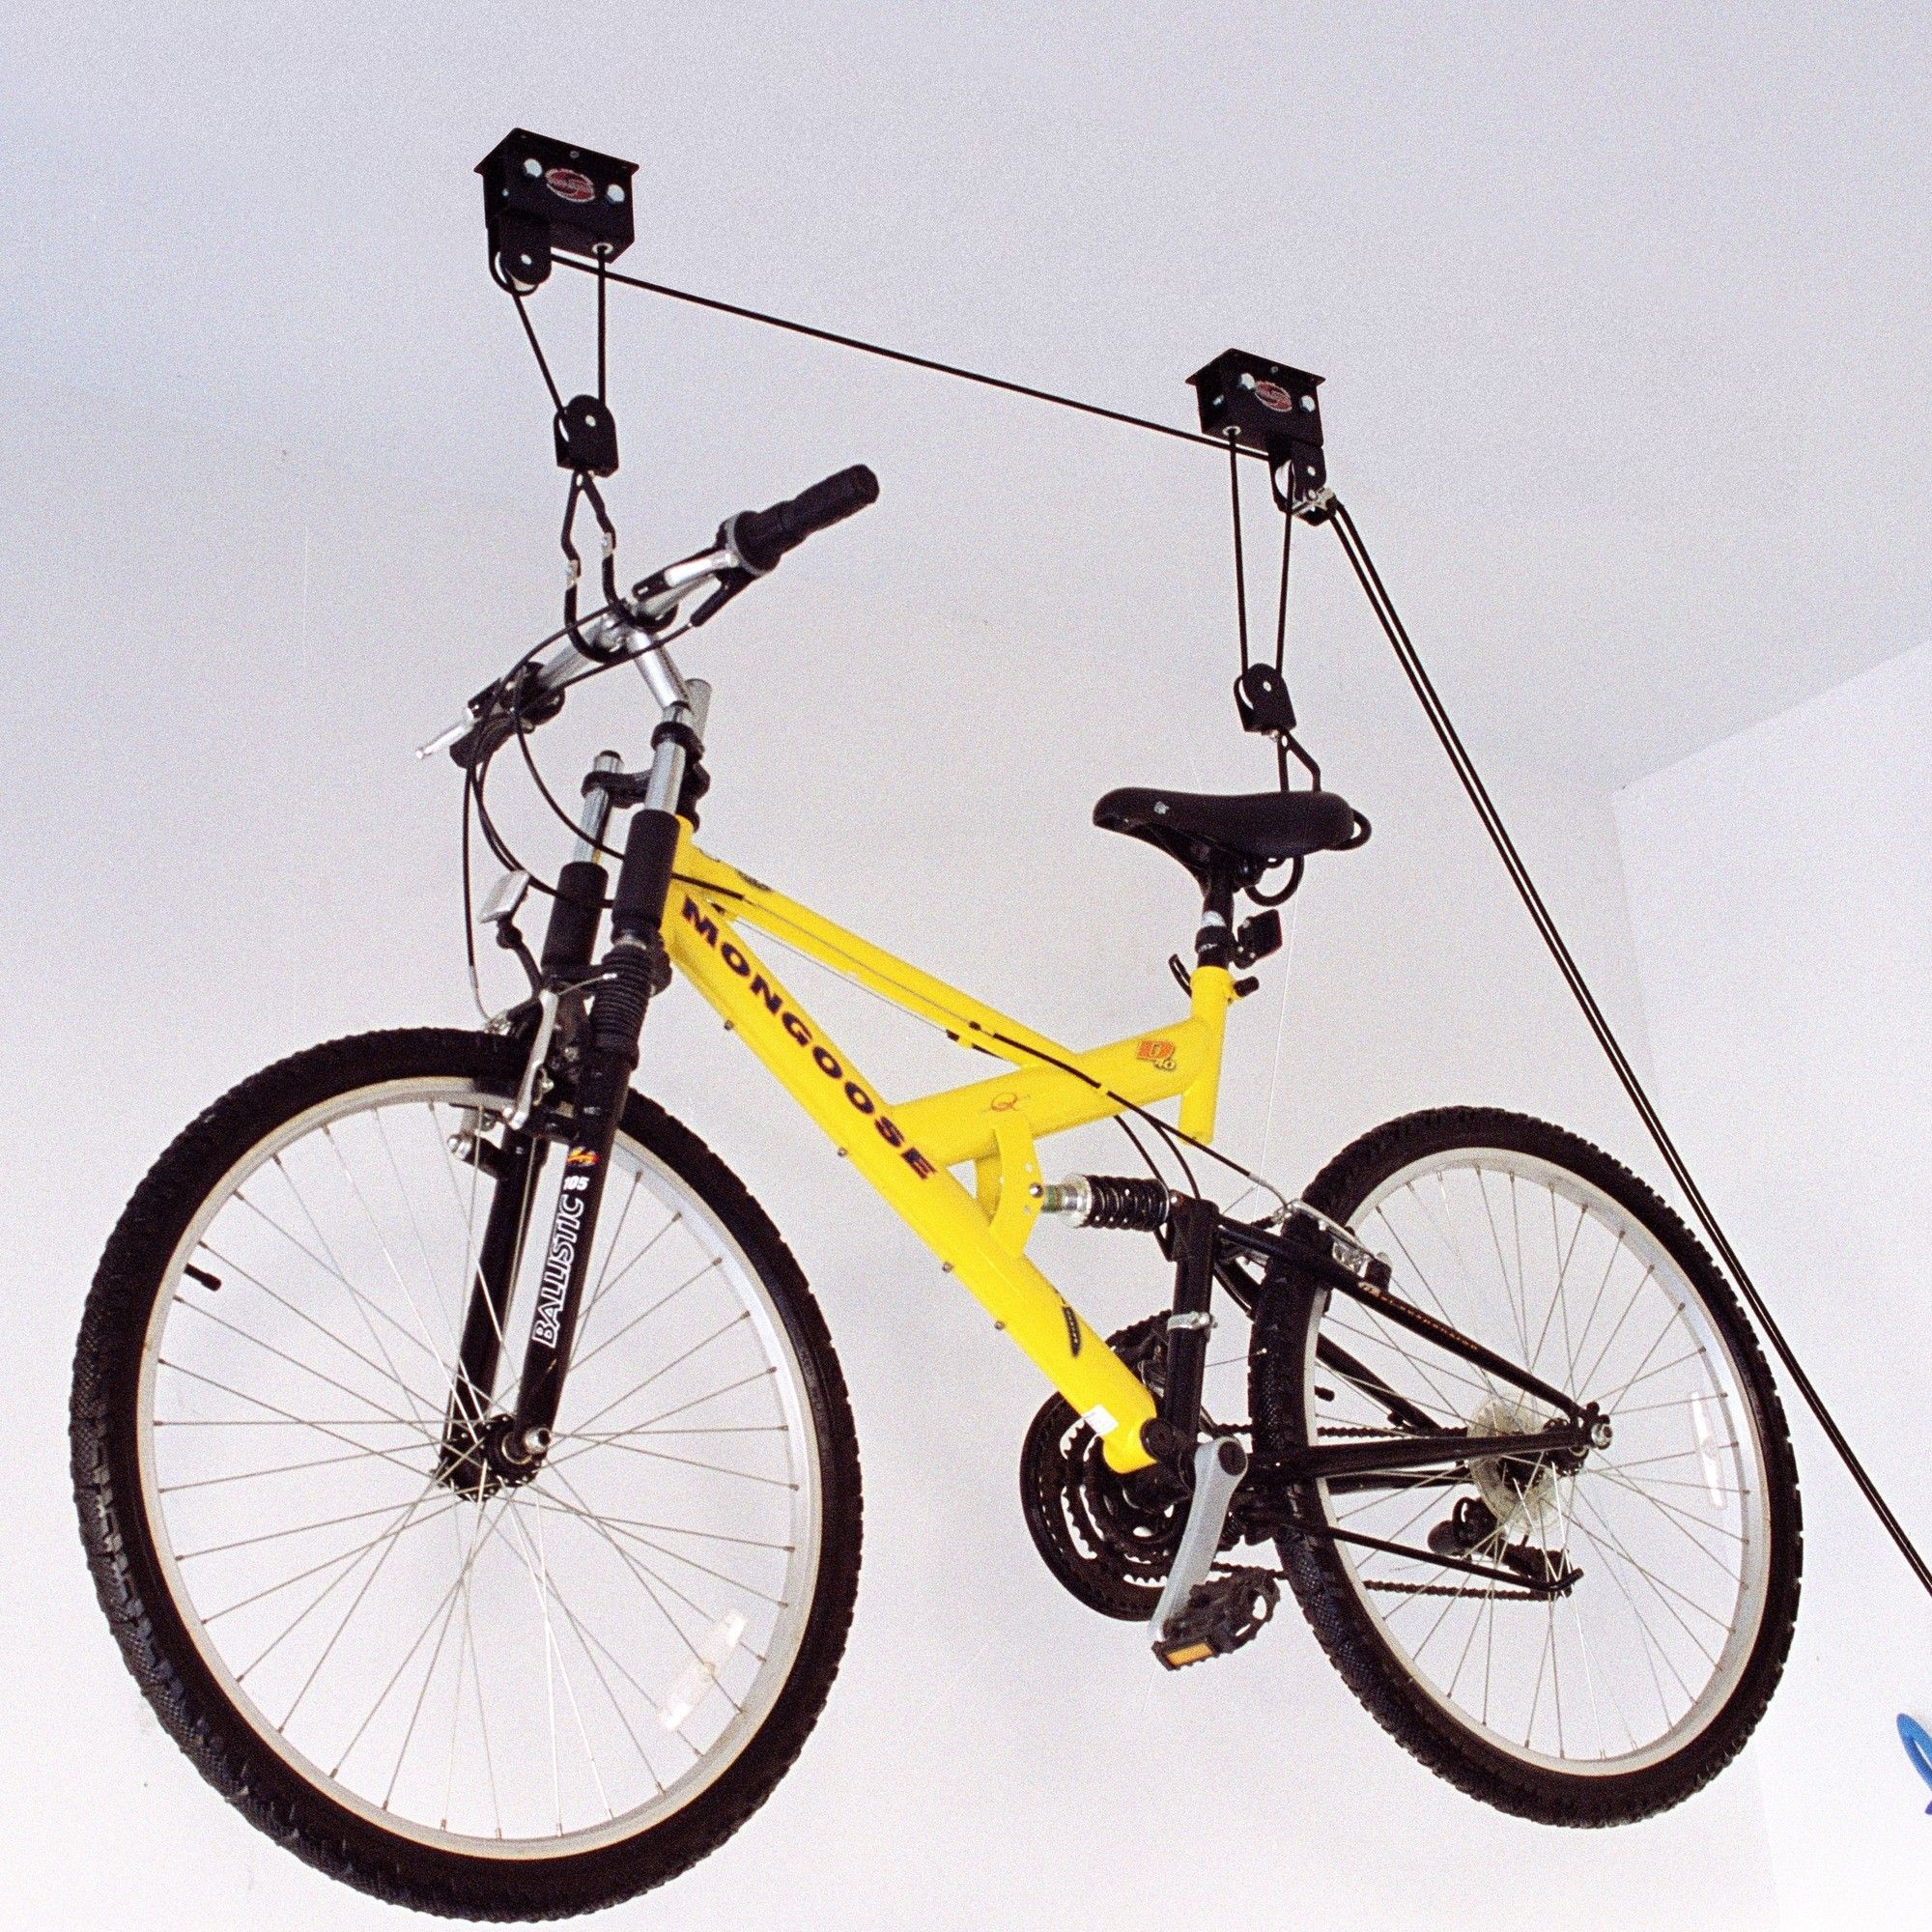 bike bicycle mount lift ceilings capacity hoist mountain products pack rad pin ceiling garage cycle